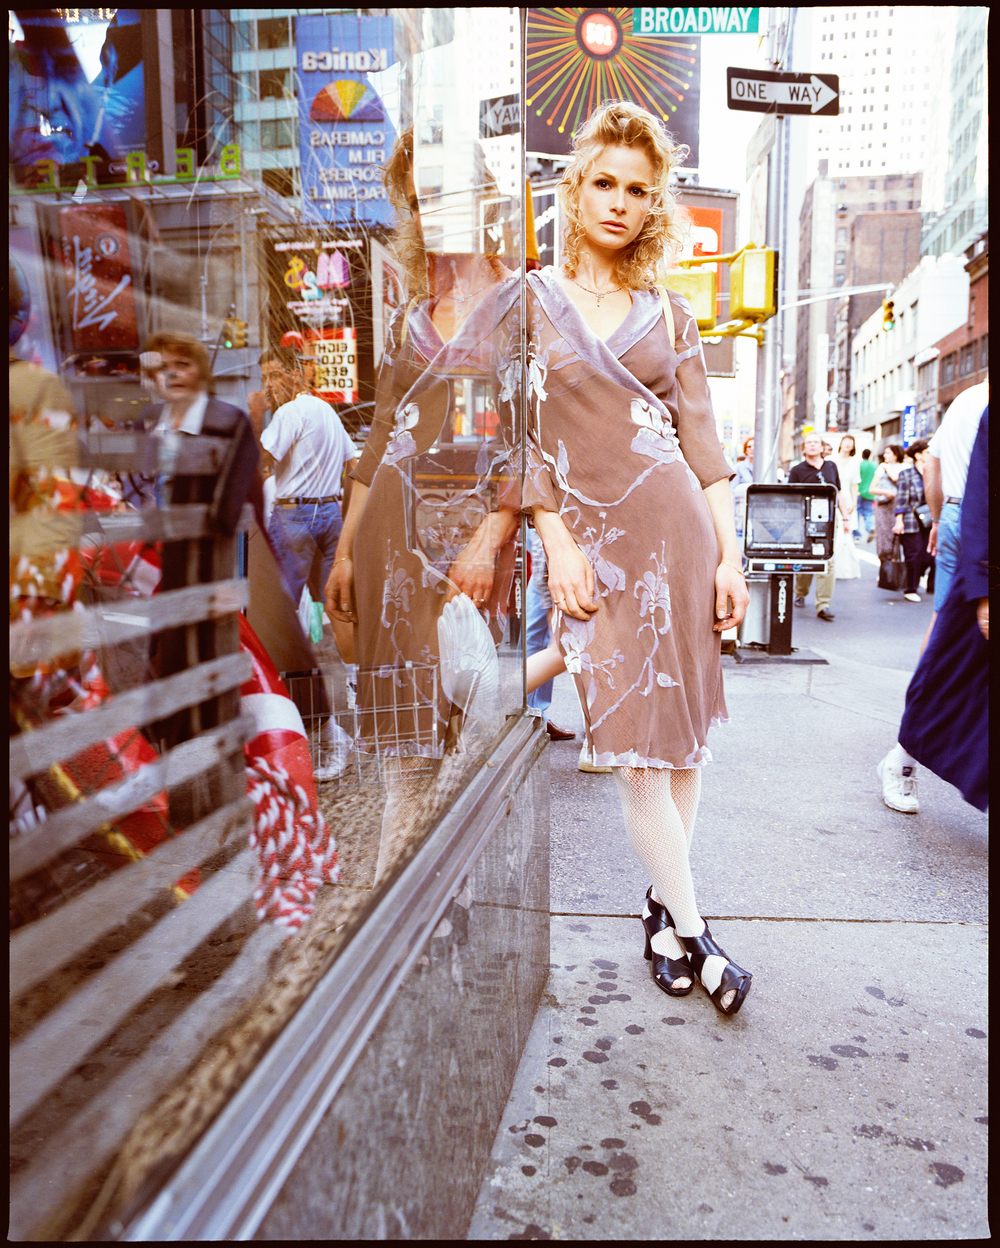 Kyra Sedgwick photographed by Patrik Andersson in Times Square New York City